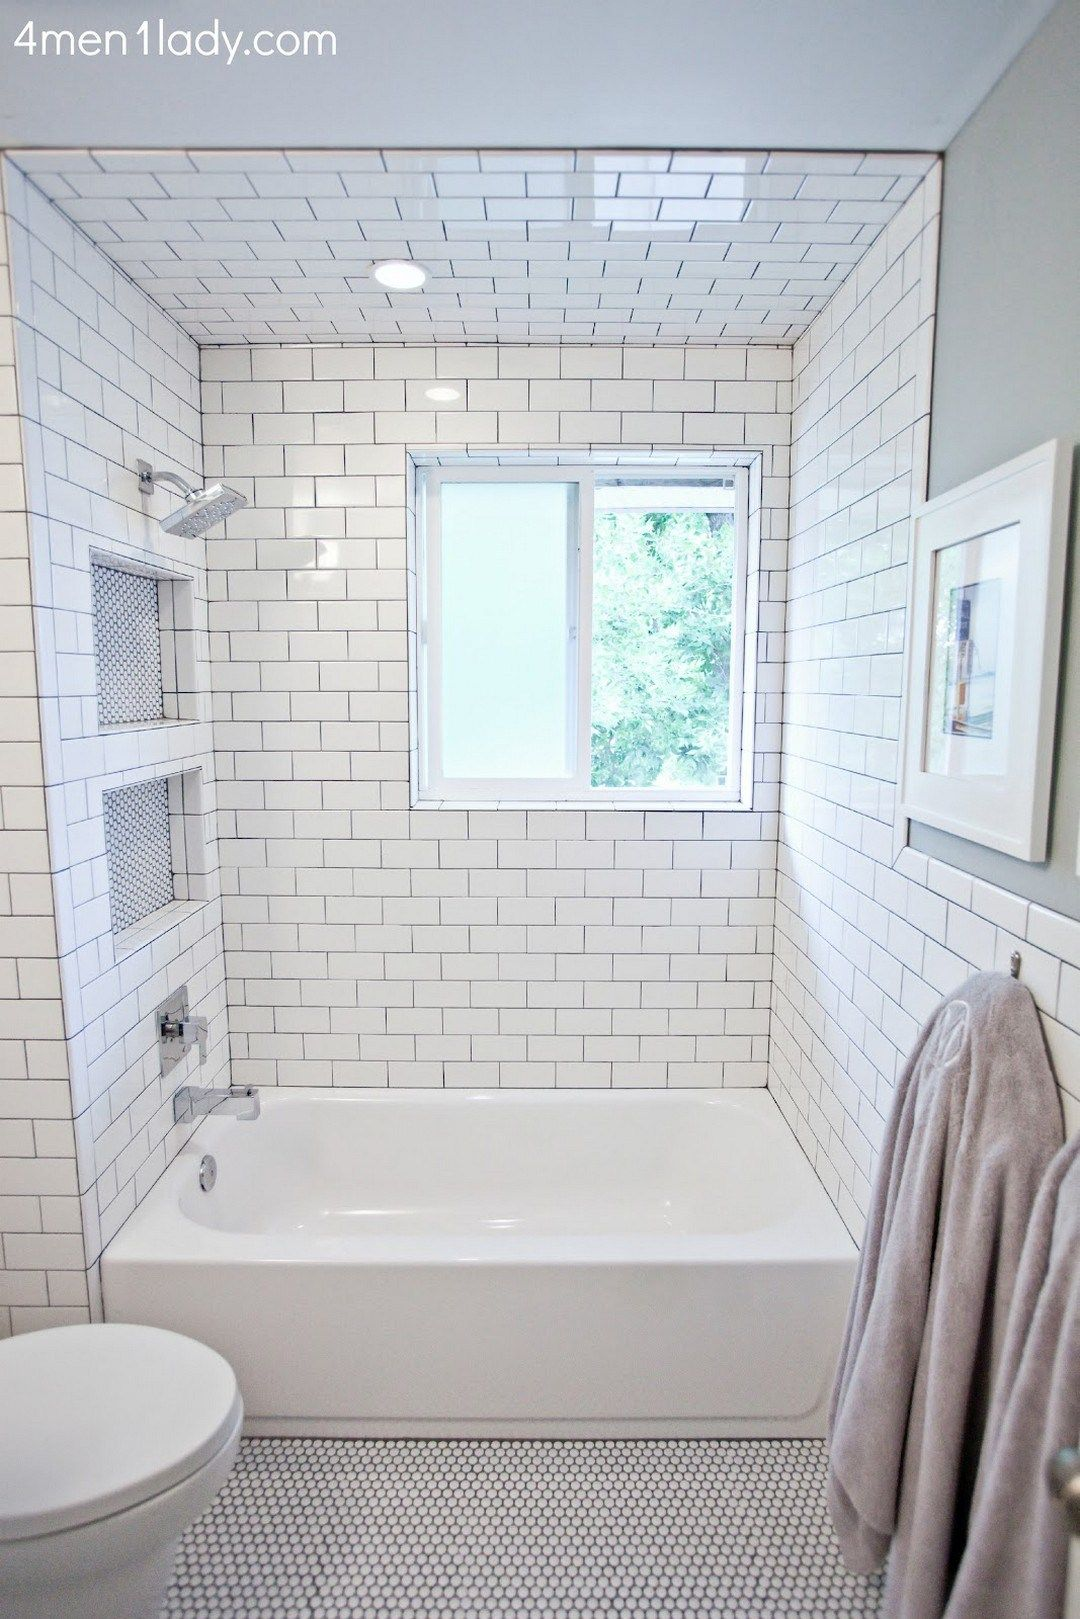 The Cons Of Bathroom Remodeling Bathroom Tub Shower Combo - Bathtub Shower Combo For Small Spaces